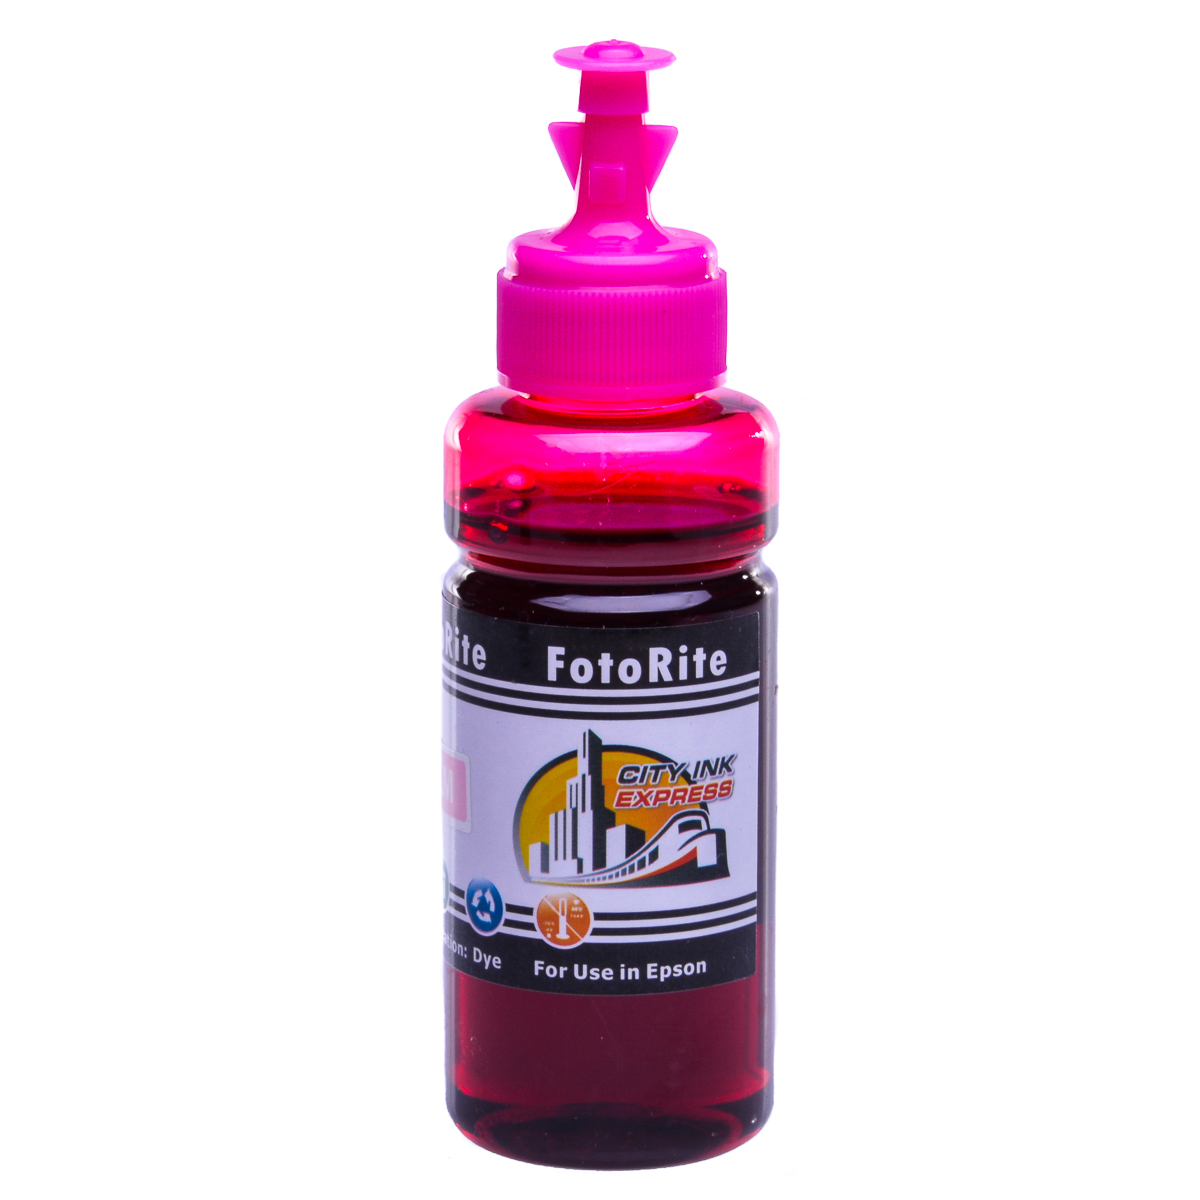 Cheap Light Magenta dye ink refill replaces Epson L850 - T6736